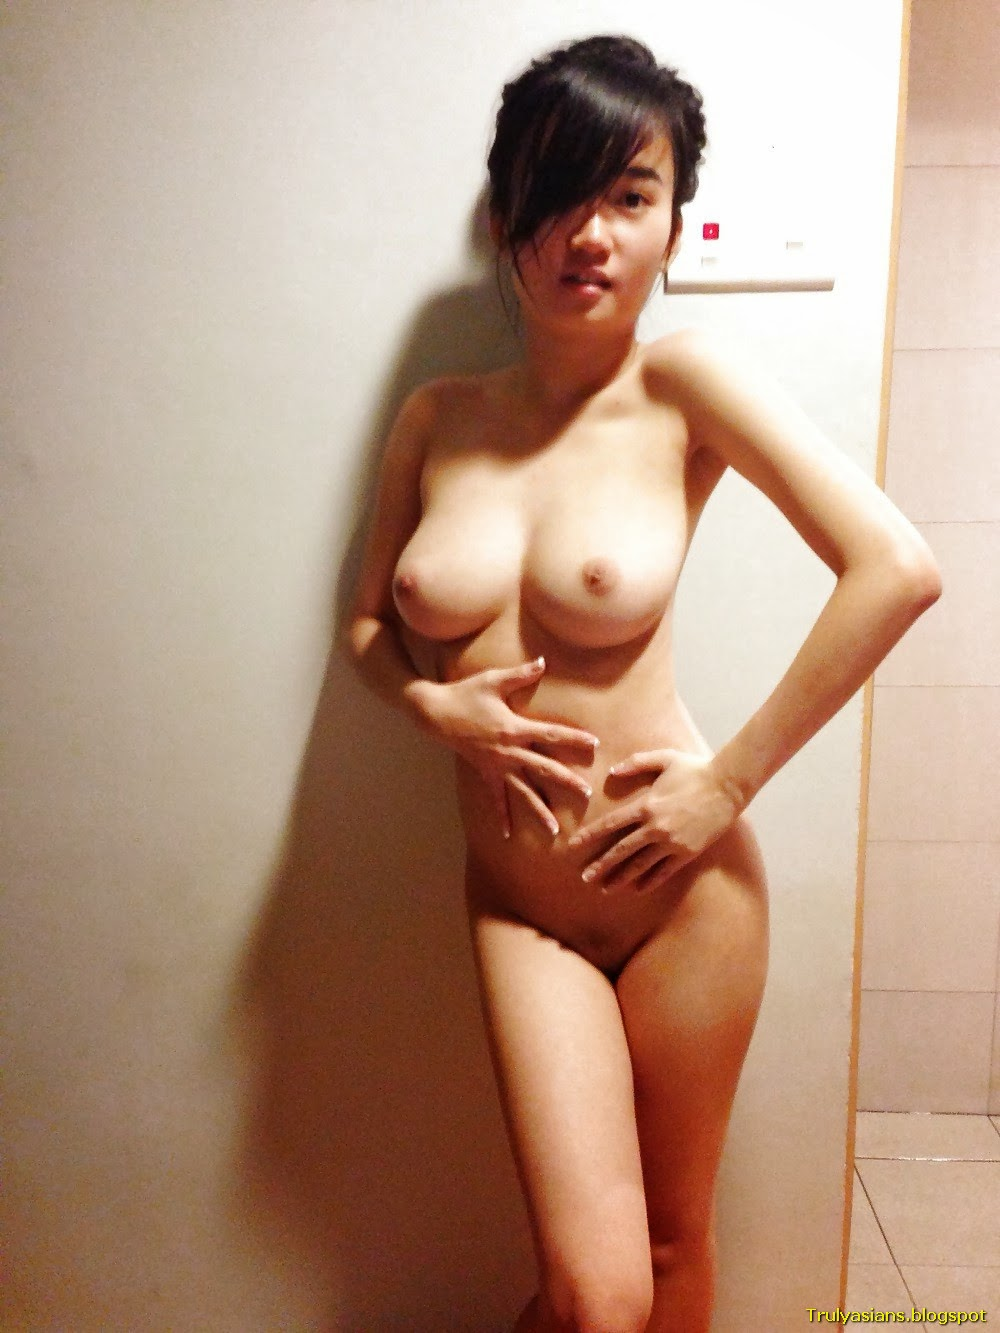 See Melayu Live Sex Video Xxx For Free - Wwwporn18Pgalsinfo-2286